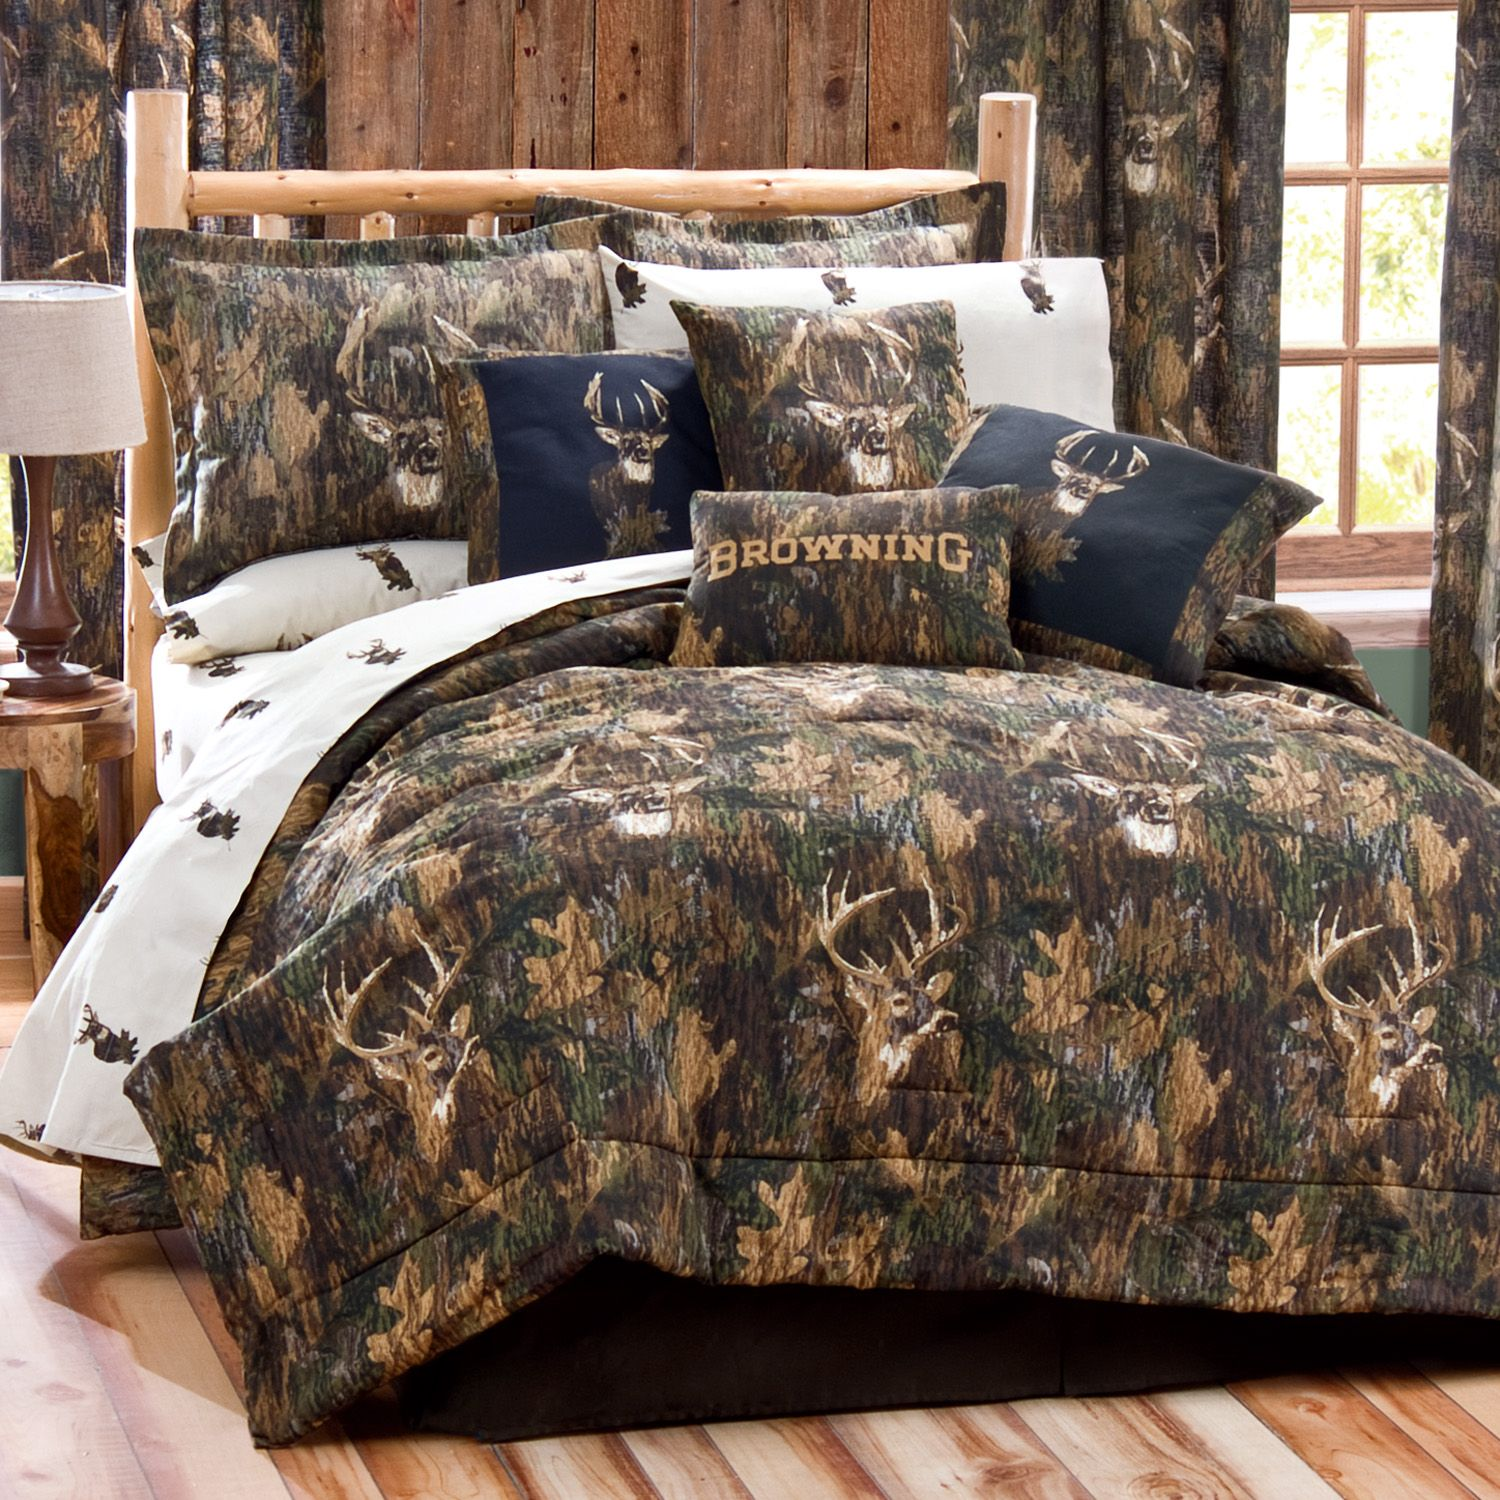 What a great look for a lodge or cabin Browning Camo